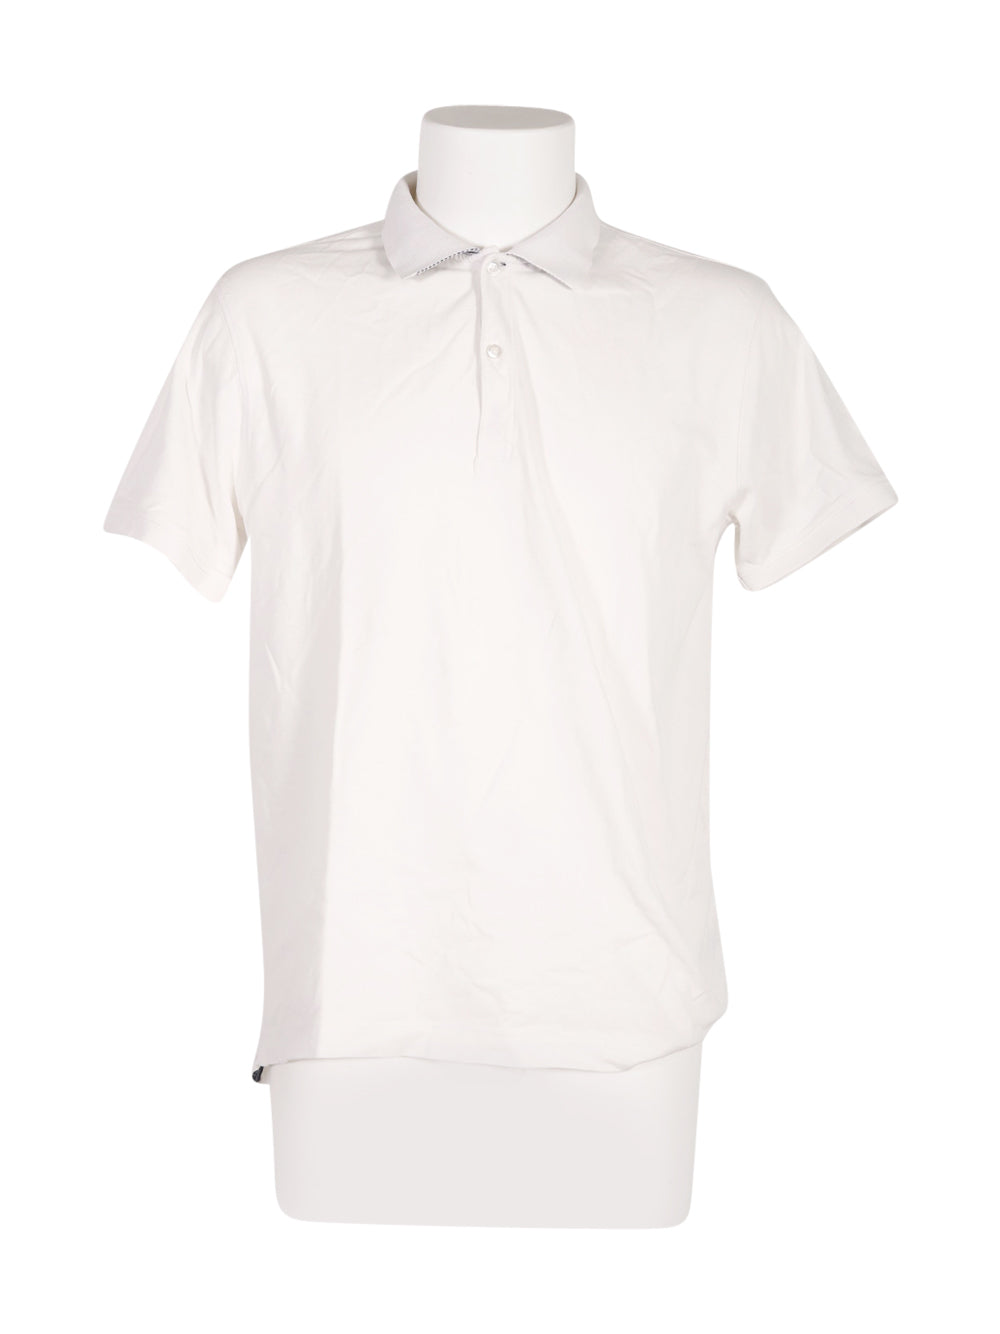 Front photo of Preloved dan john White Man's polo - size 40/L